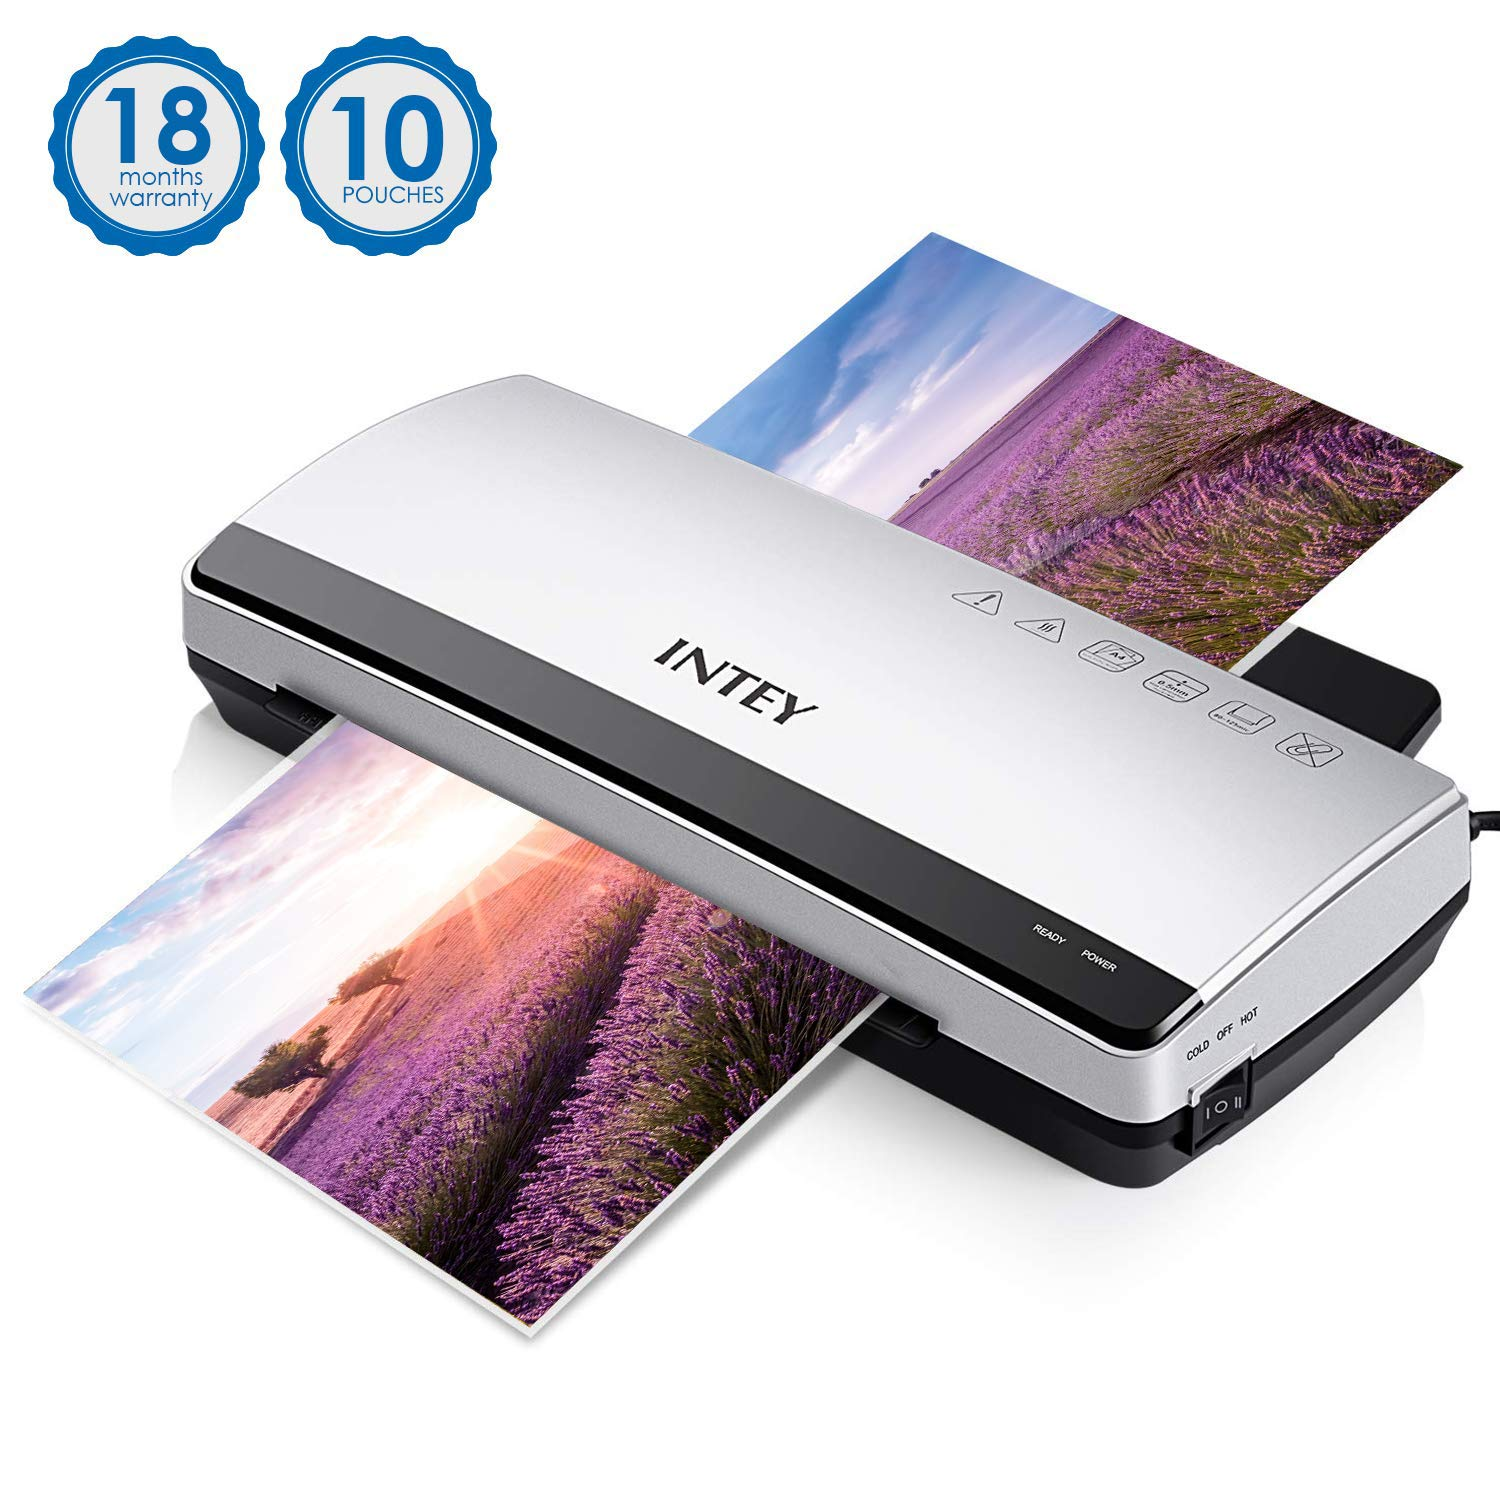 INTEY A4 Laminator, Thermal Laminator Machine 2 Rollers Support Thermal  Film and Cold Laminating for Quick Warm-up Speed include 10 Laminating  Pouches